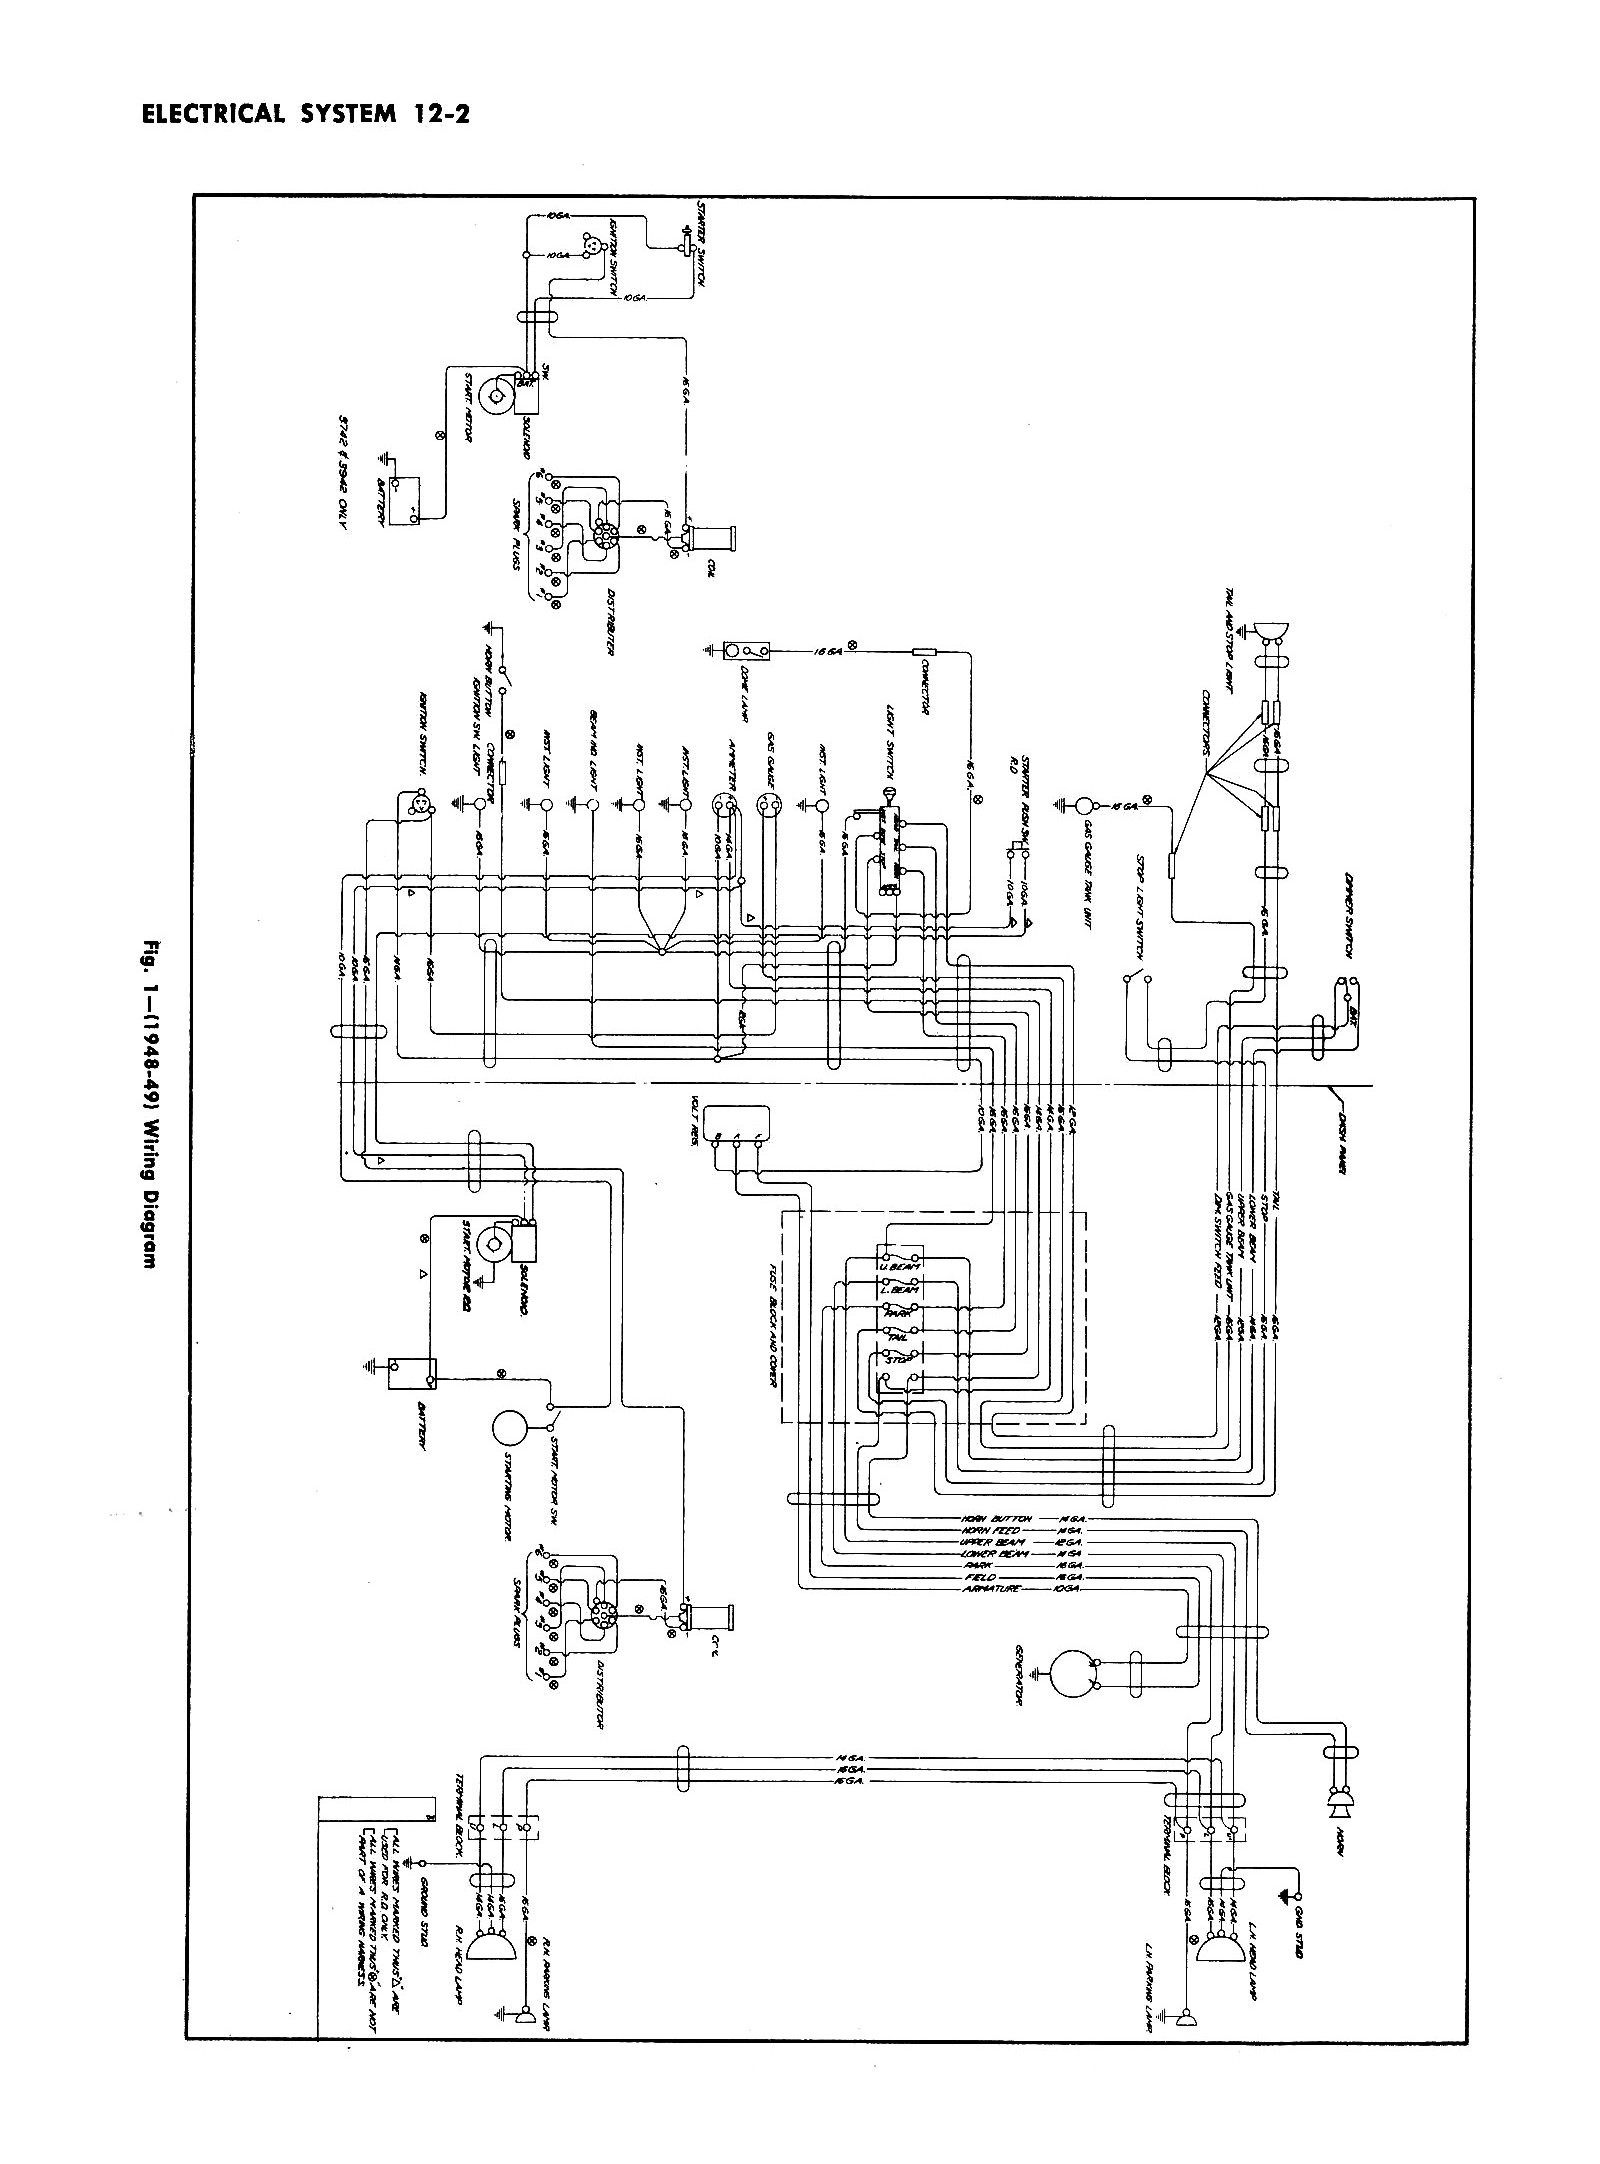 48car gmc ke switch wiring diagram wiring diagram simonand gm truck wiring harness at crackthecode.co